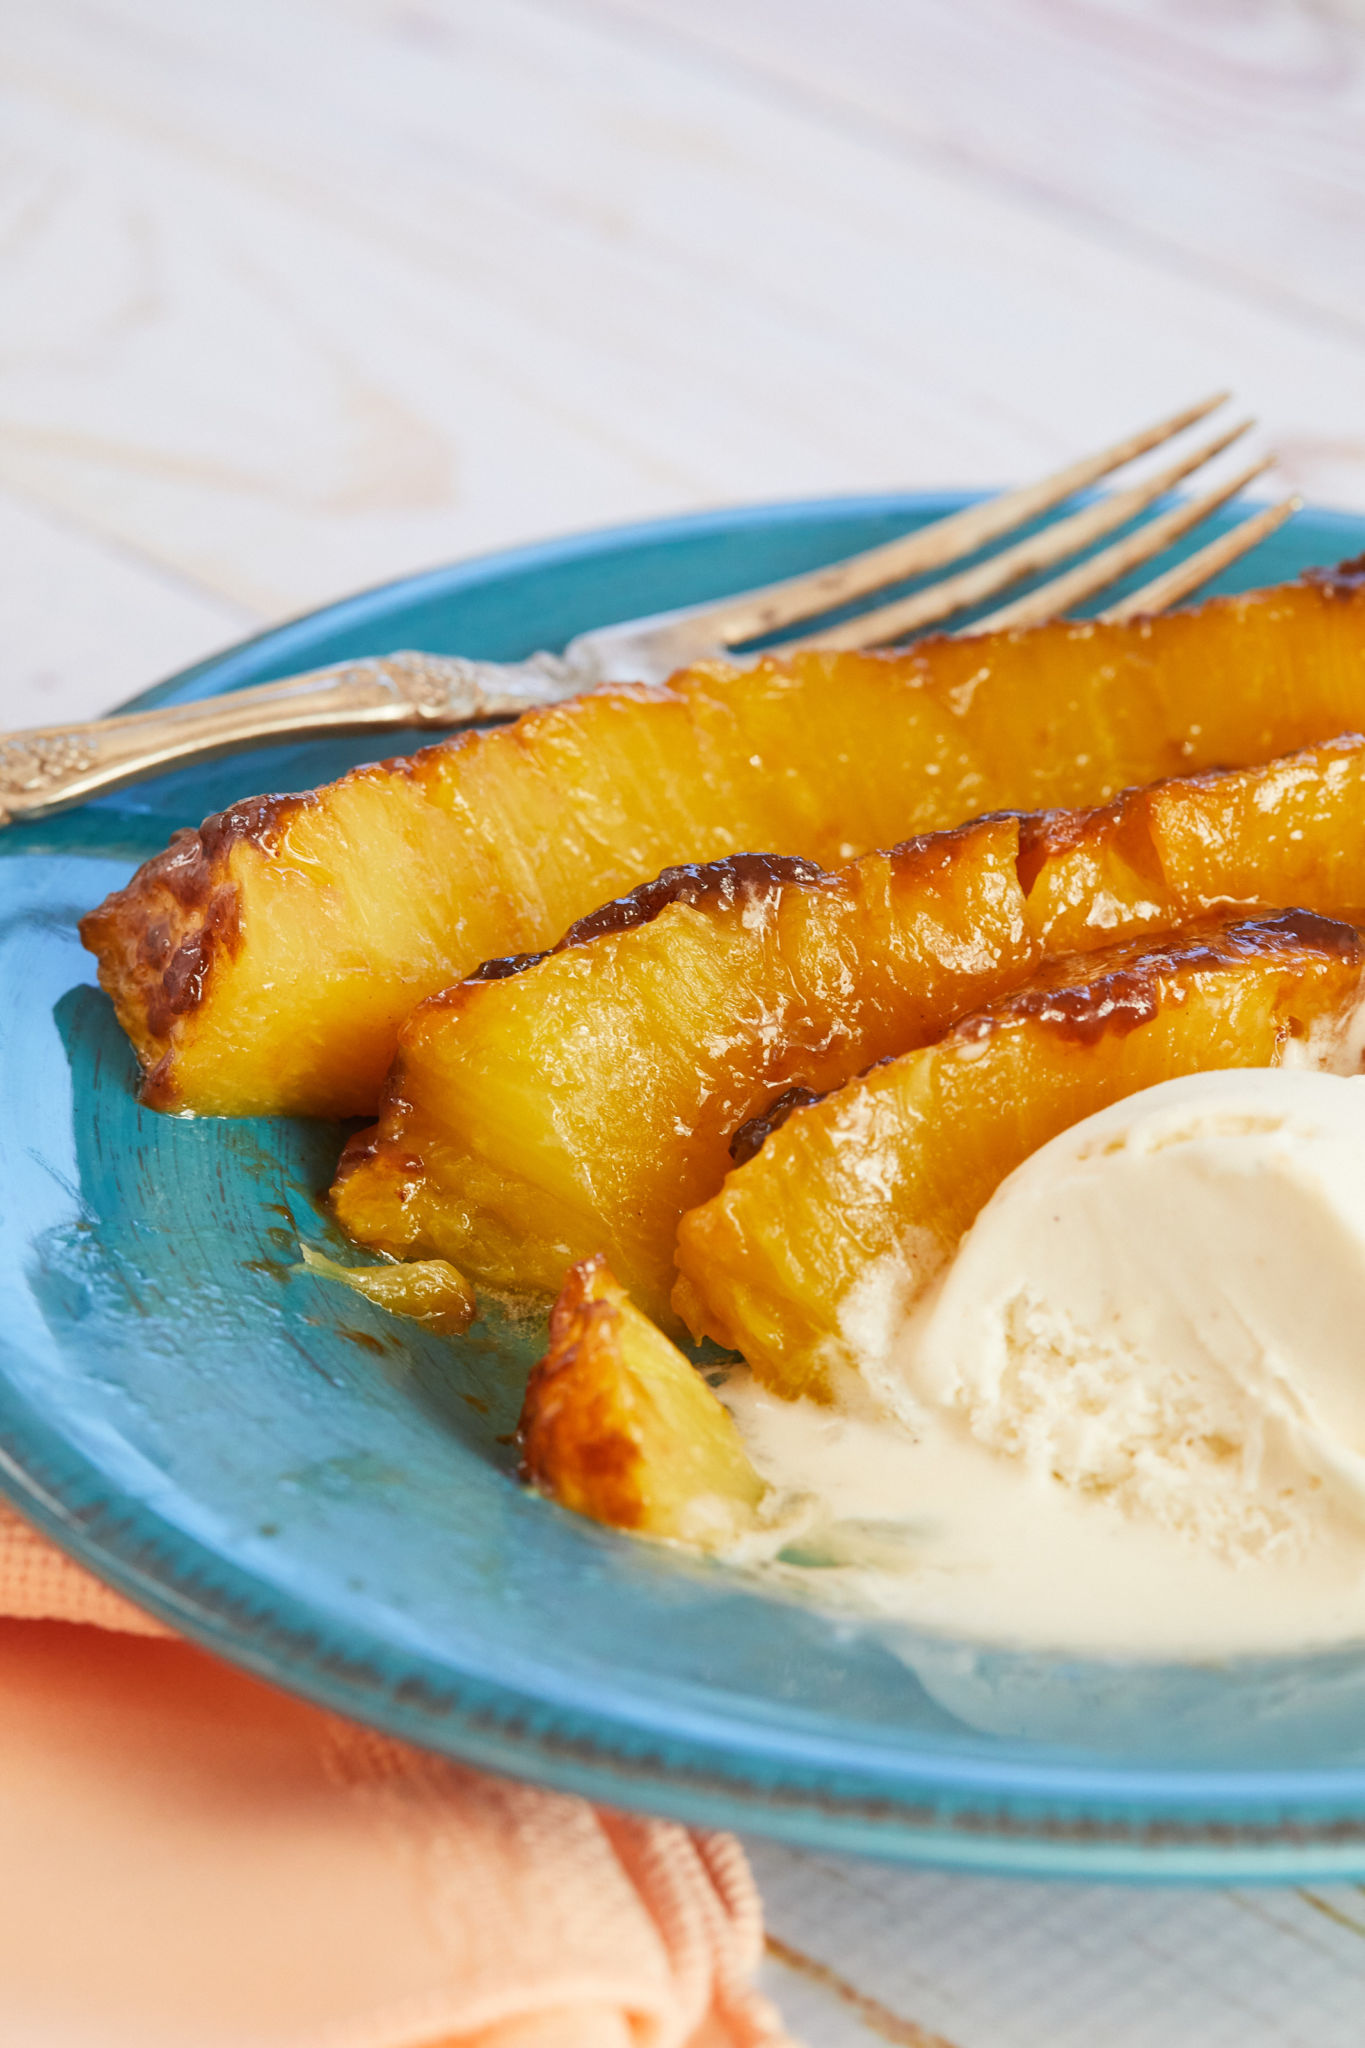 A plate of roasted pineapple showing texture and consistency.